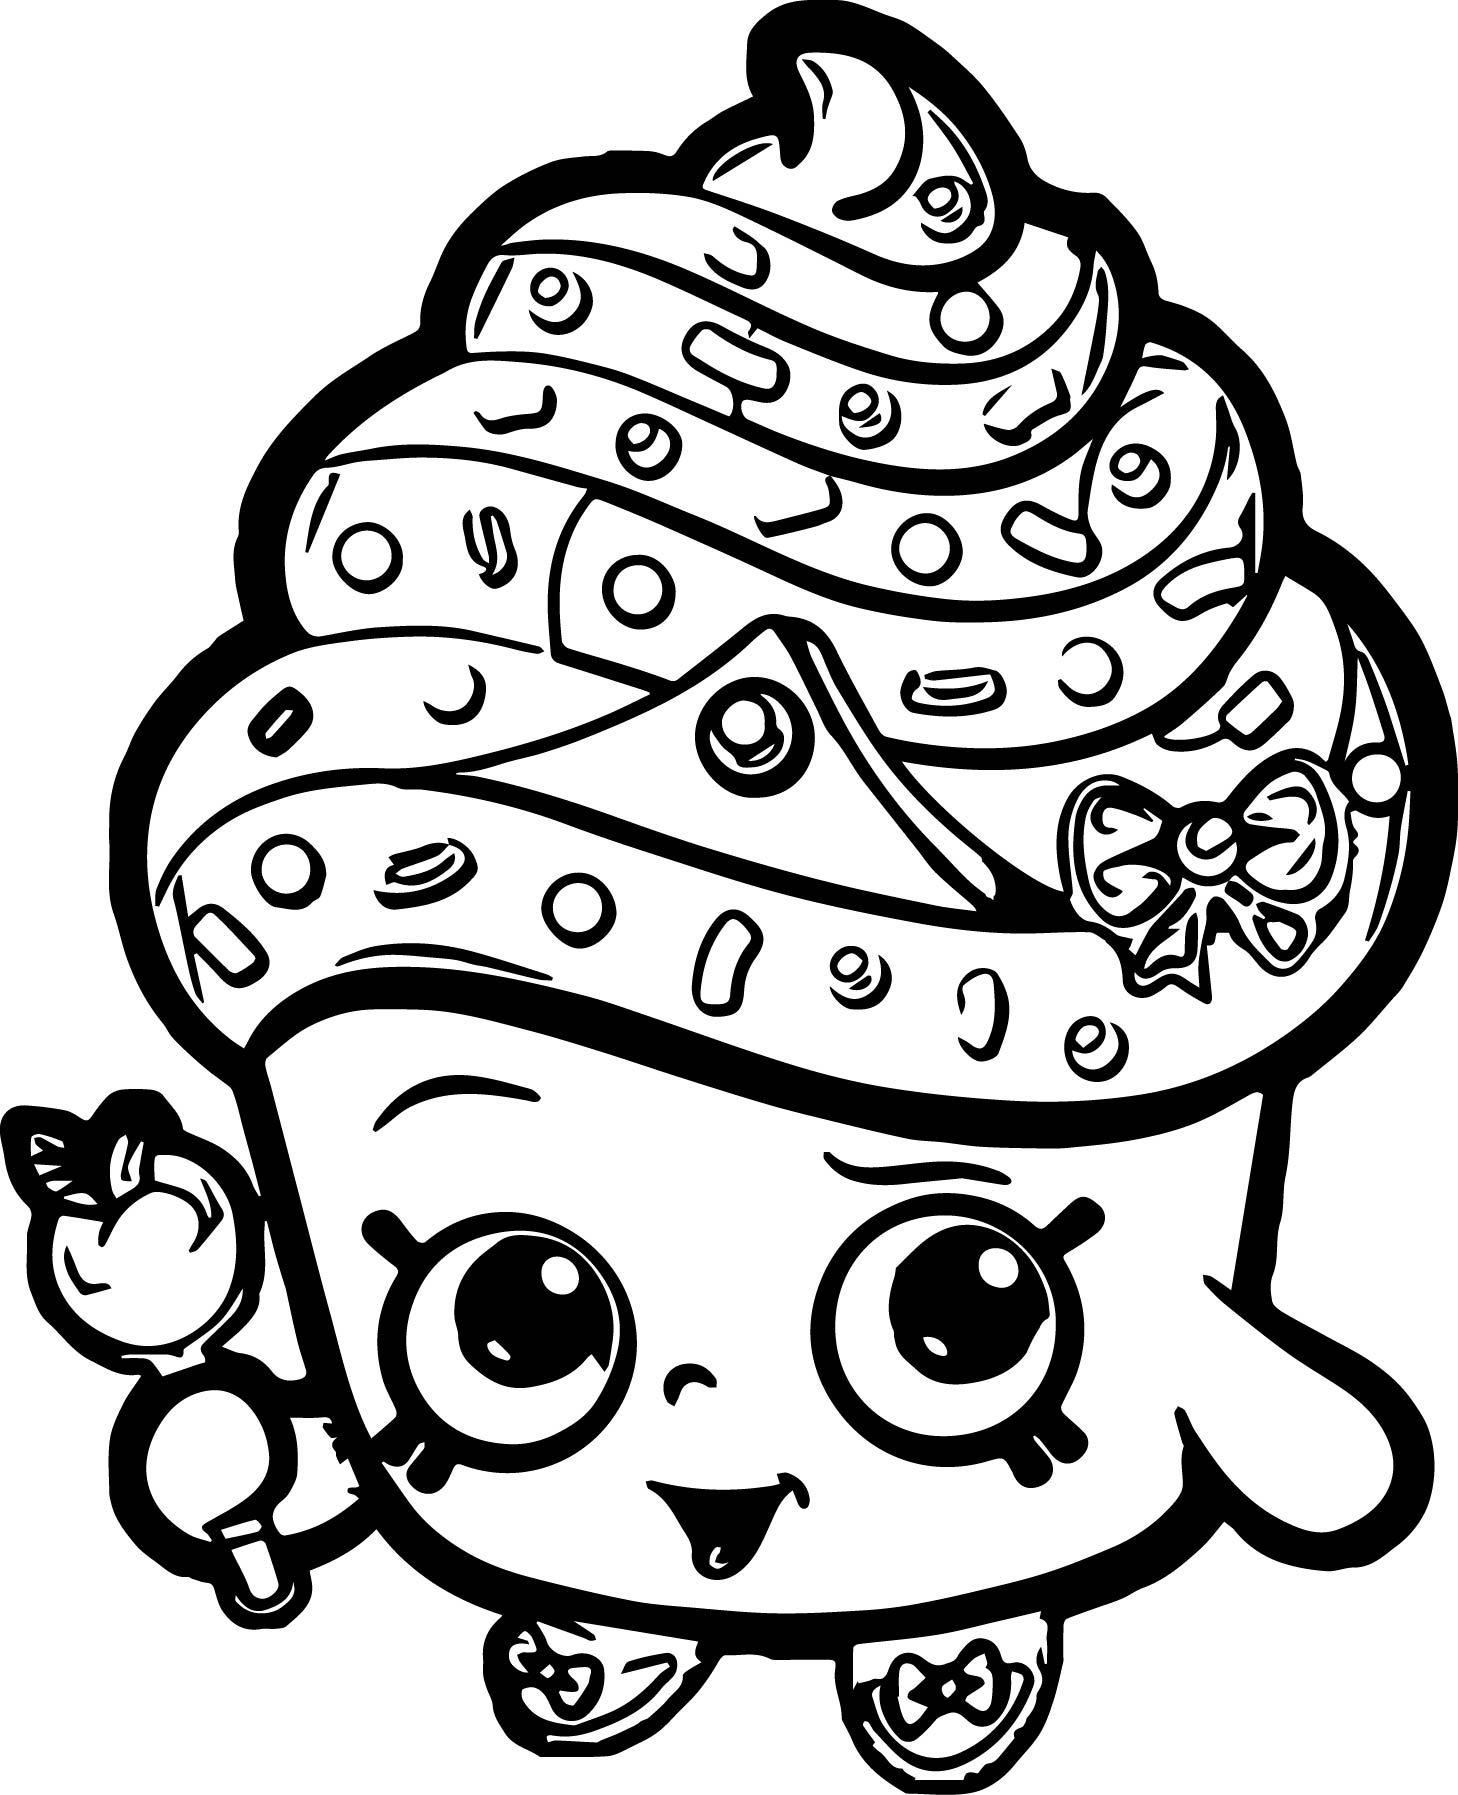 8 Coloring Page Cupcake Queen Shopkins Coloring Pages Free Printable Shopkin Coloring Pages Shopkins Colouring Book